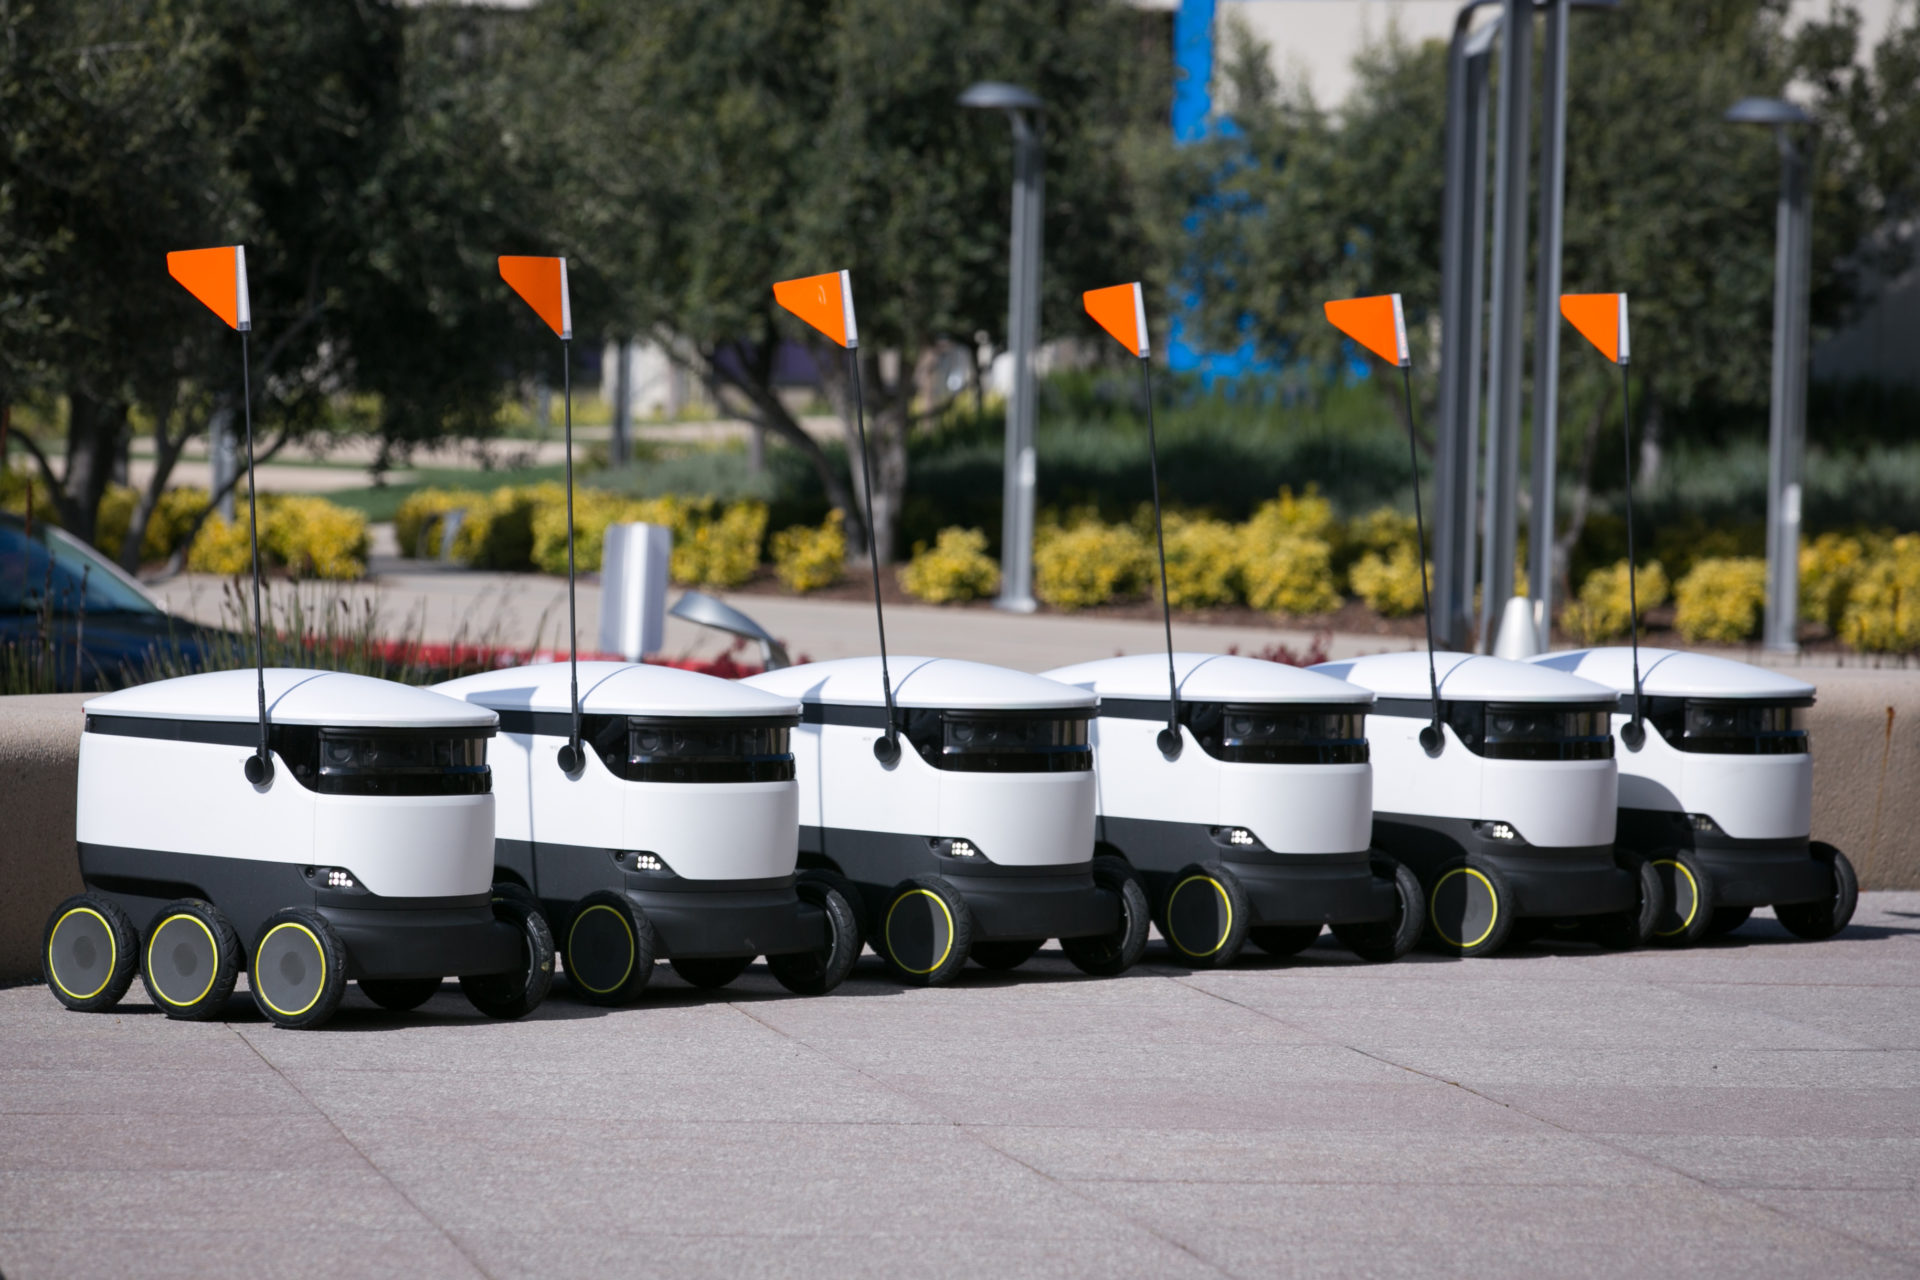 Starship Technologies announces $40m Series A funding for robot delivery expansion